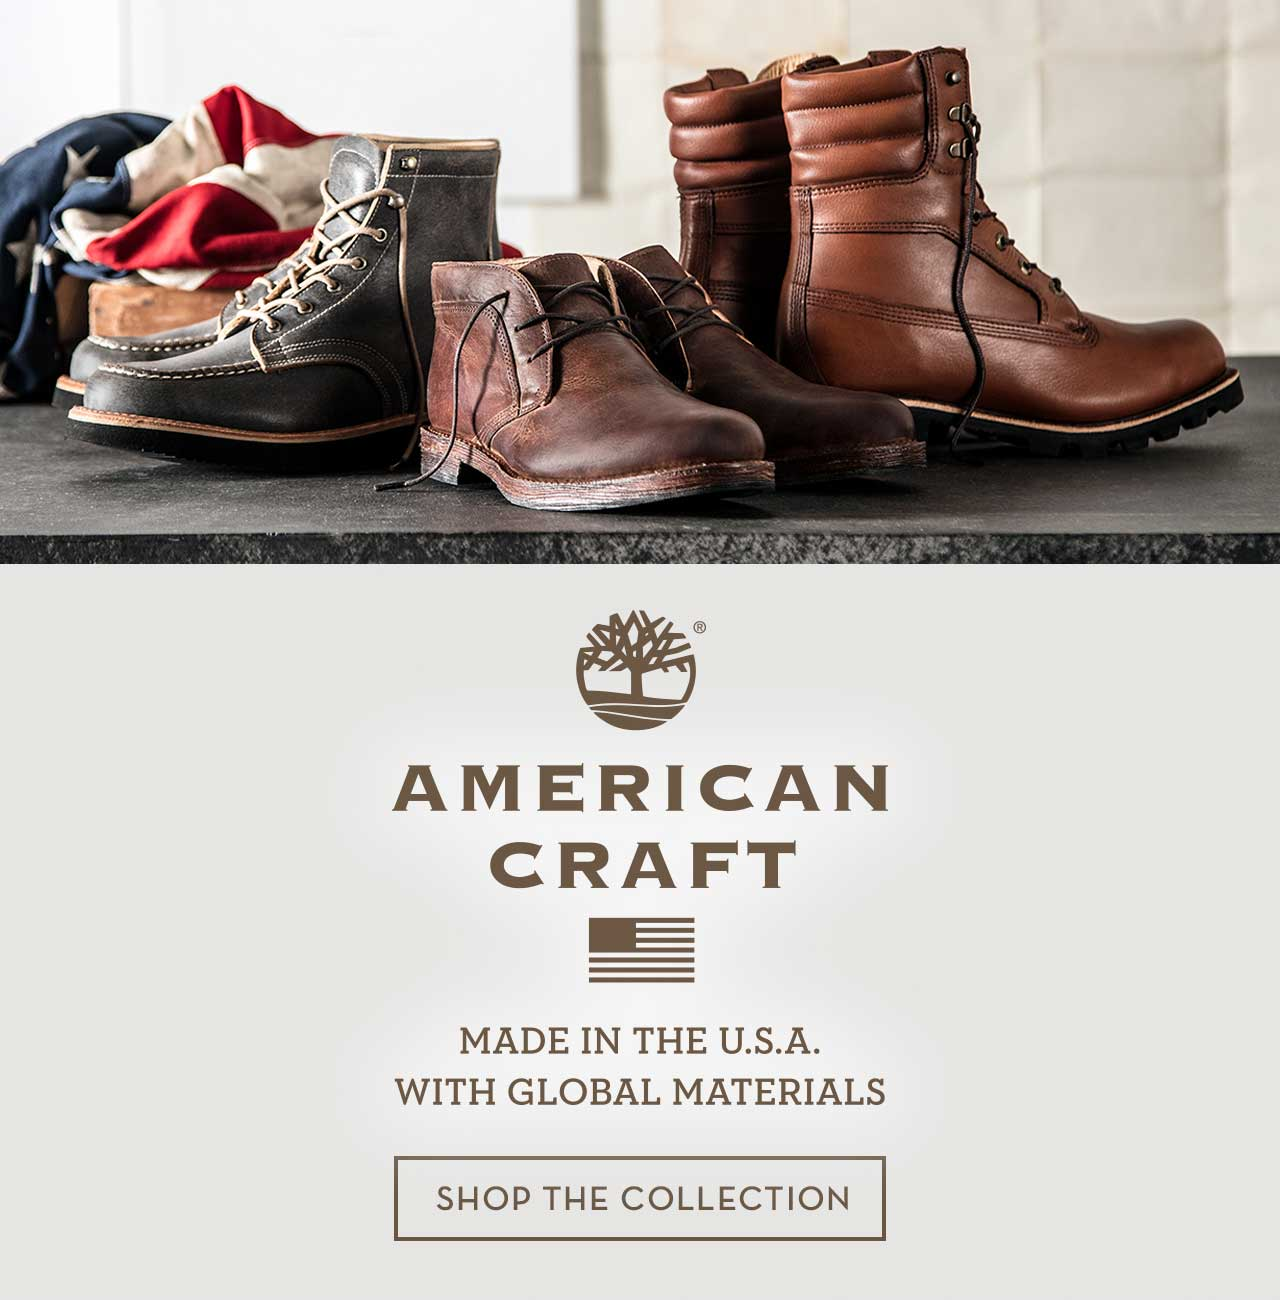 TimberlandIntroducing Our Craft American Timberland® TimberlandIntroducing Timberland® Our Craft American TimberlandIntroducing American Timberland® Our rCEQBexoWd